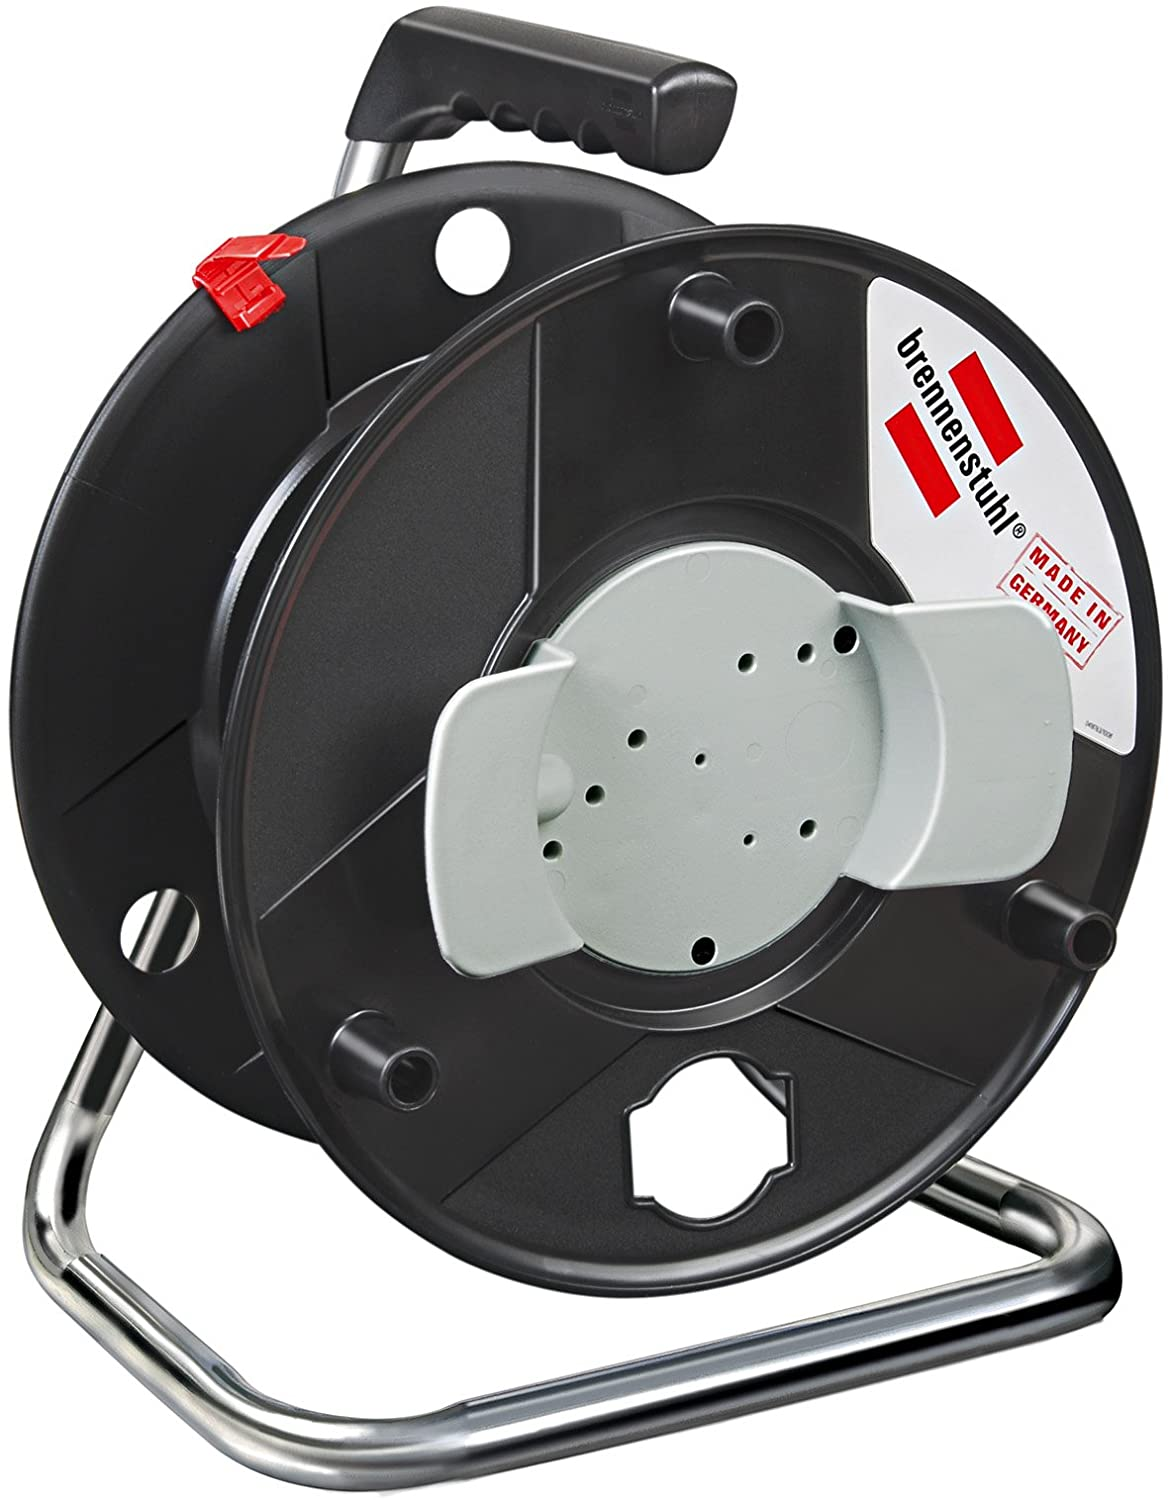 Brennenstuhl Garant hose reel (Ø 290mm, with carry handle, easy winding), empty cable reel for extension cable or garden hose storage, colour: black 1130710